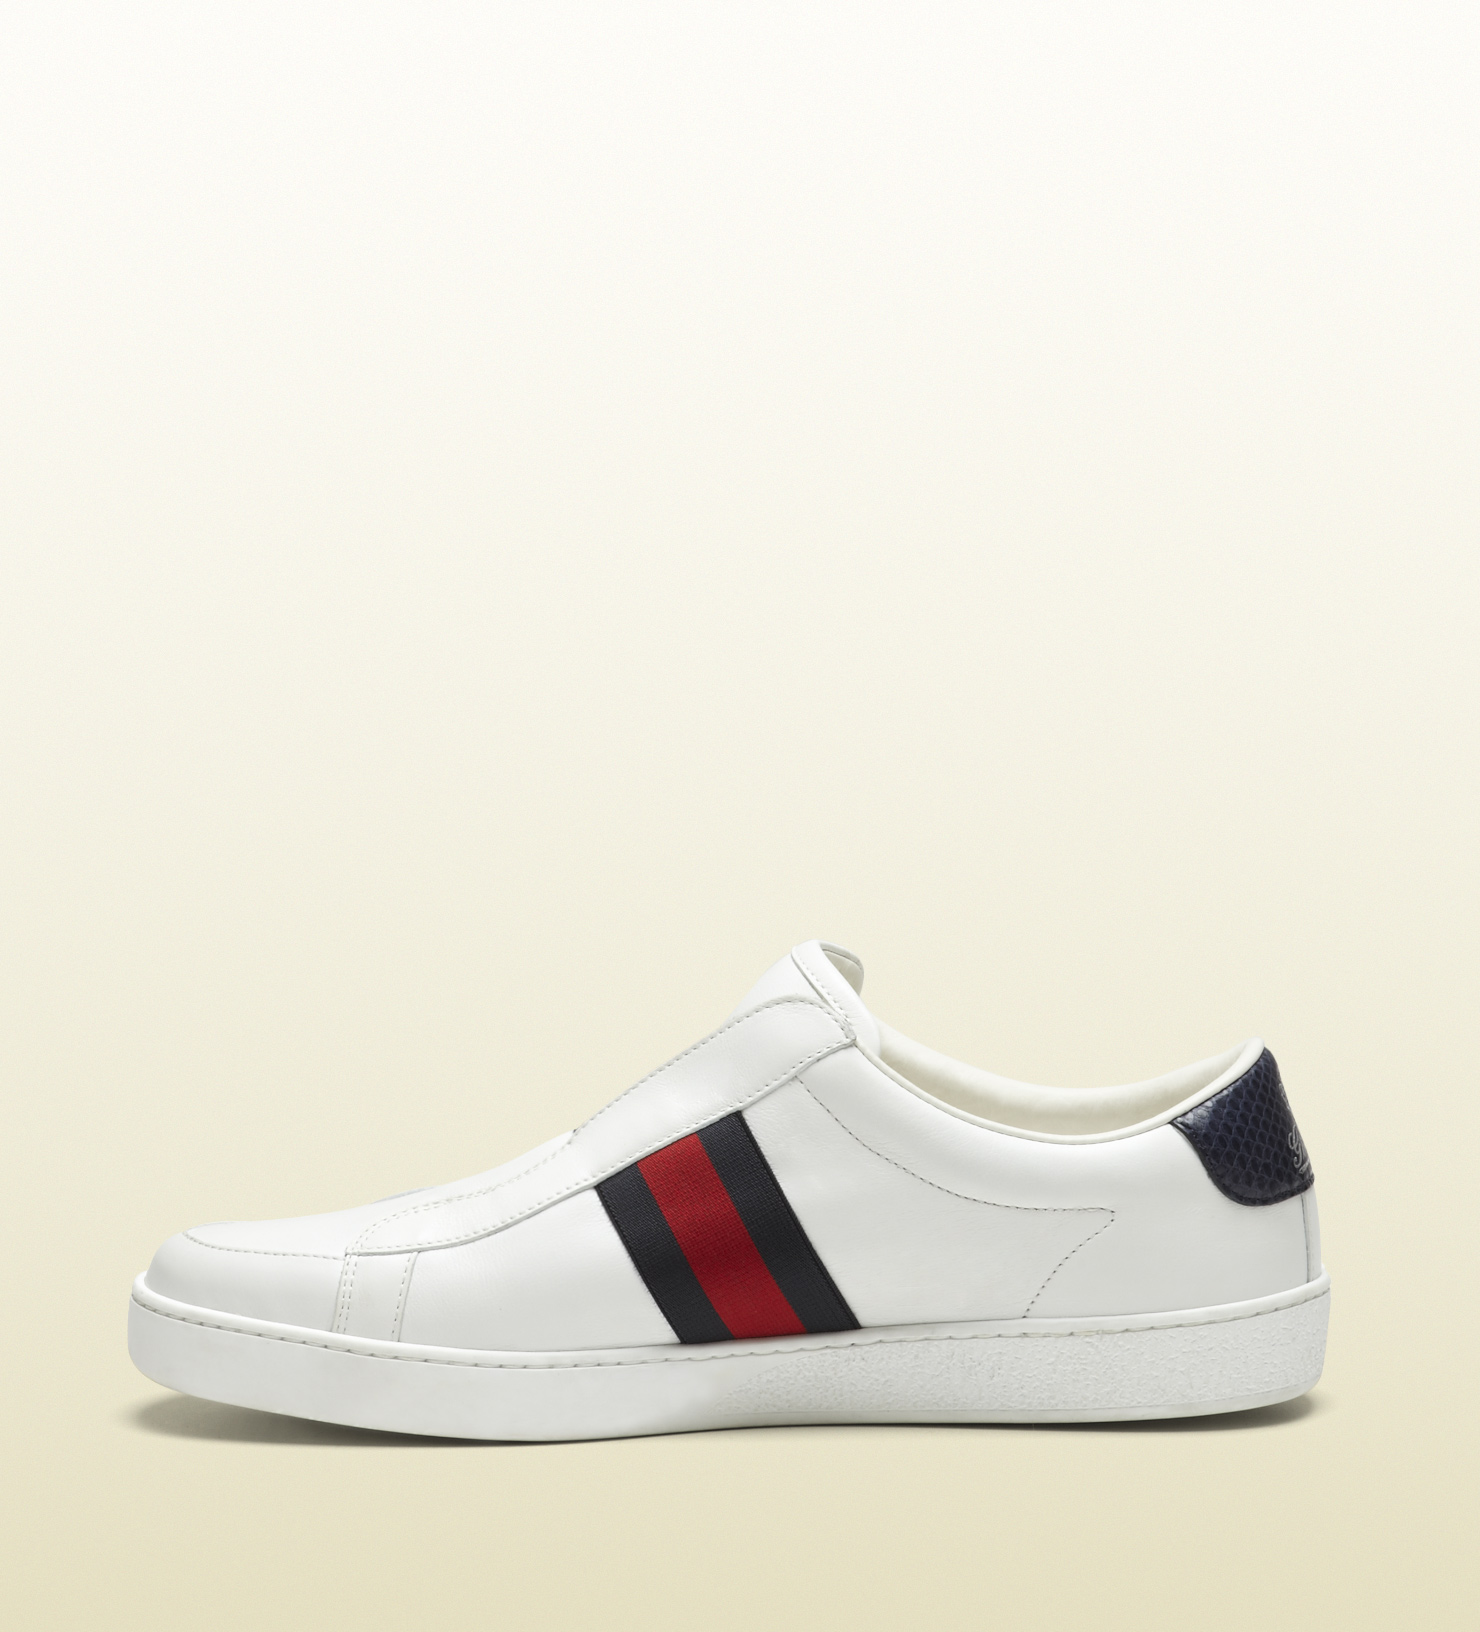 Gucci White Leather Slip-on Sneaker for